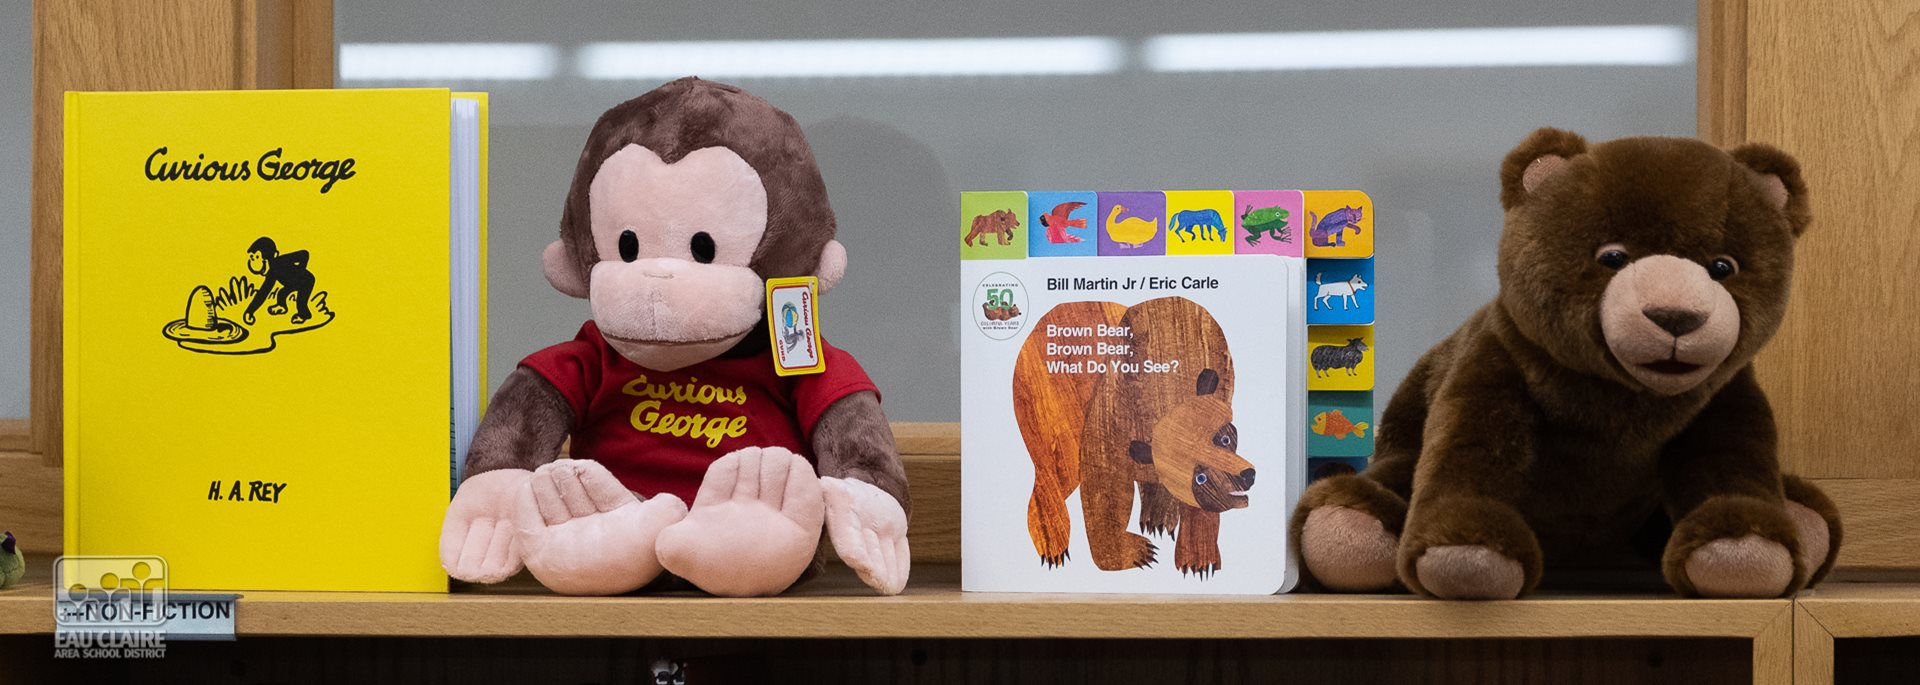 Curious George photo